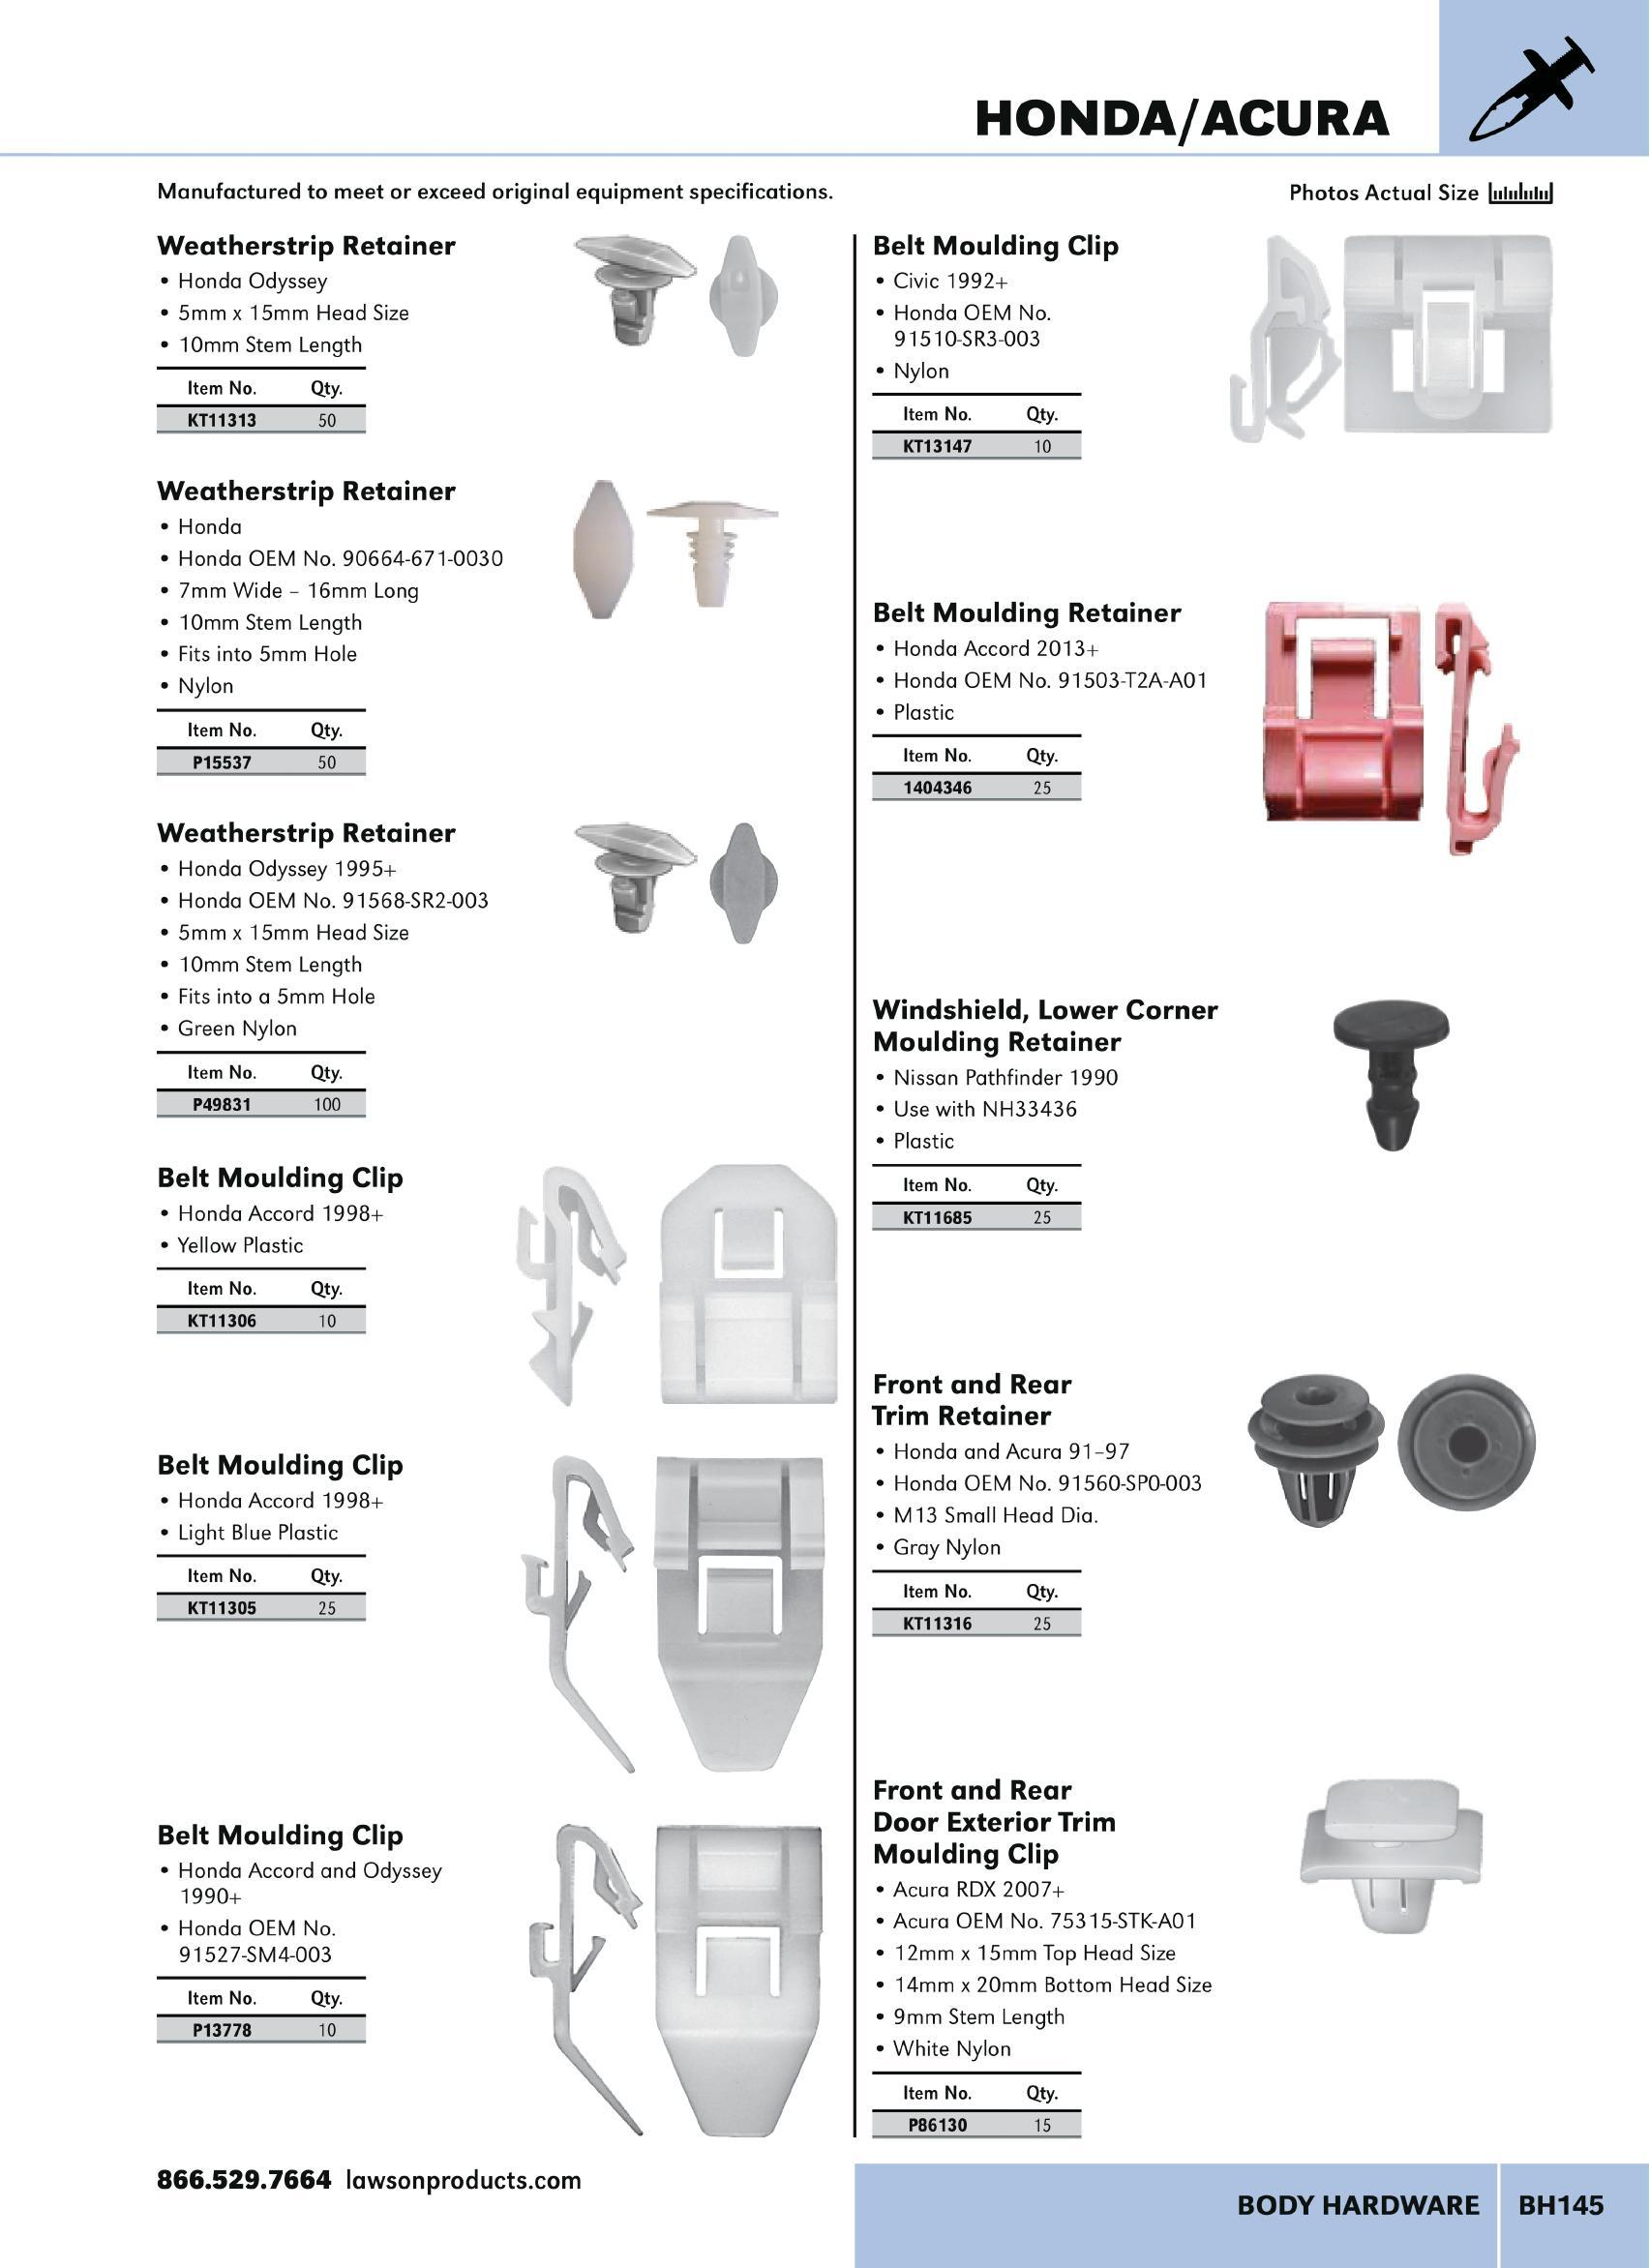 Lawson Products Catalog CA 2015 Page BH145 - Body Hardware